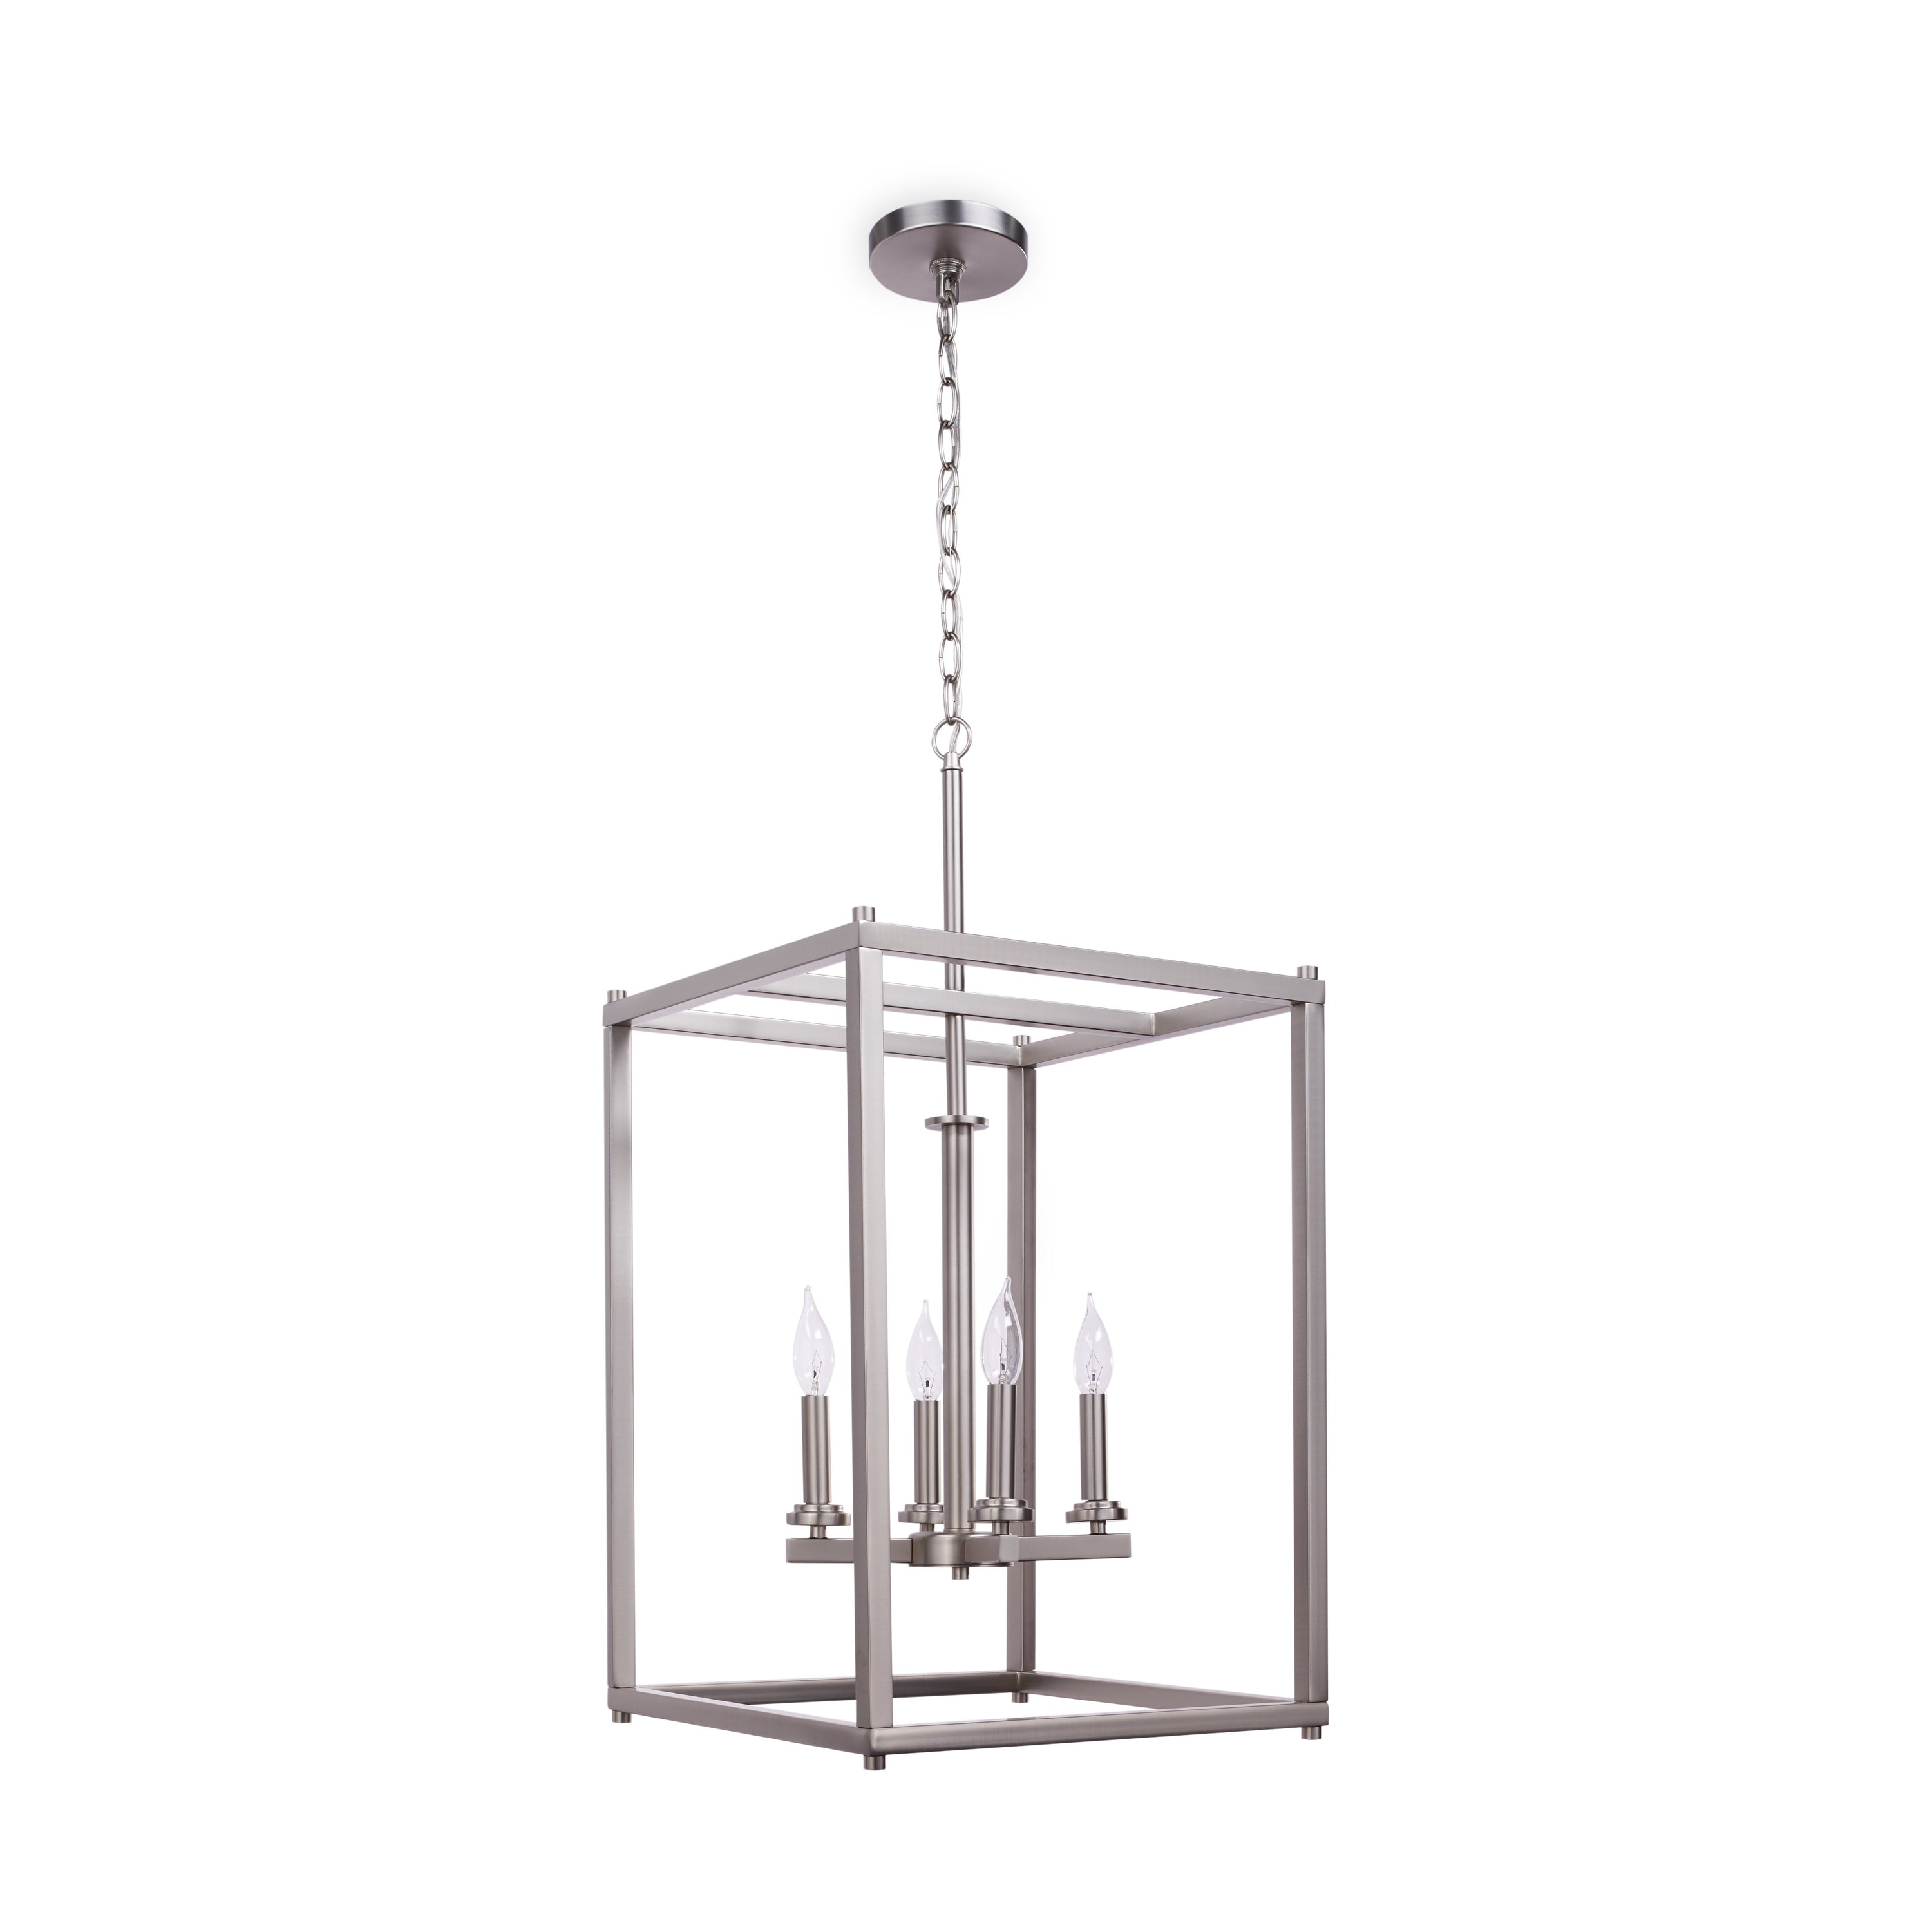 crosby collection large pendant light. Kichler Lighting Crosby Collection 4-light Brushed Nickel Foyer Pendant - Free Shipping Today Overstock 20912211 Large Light I